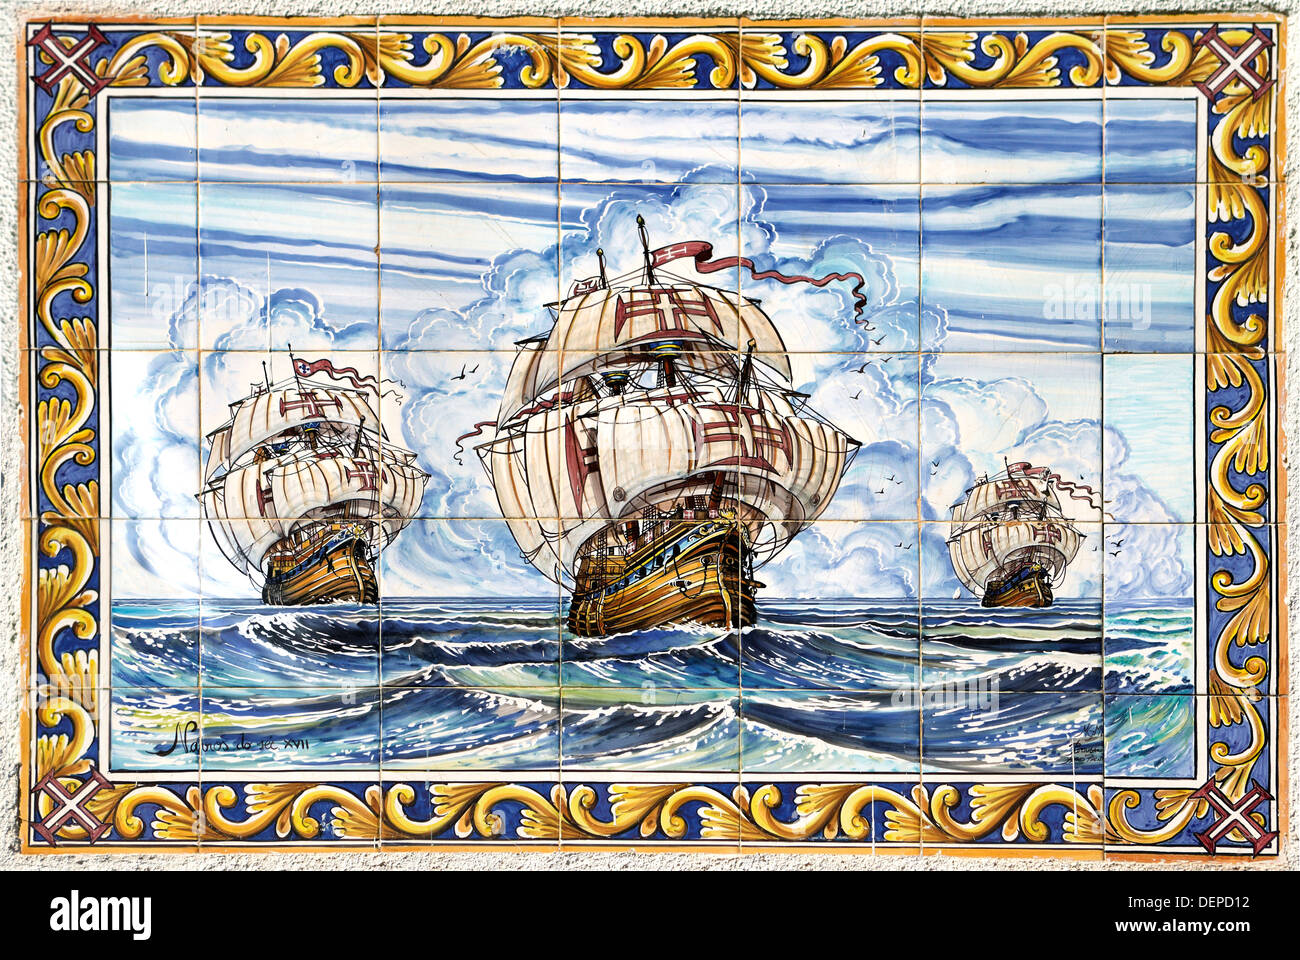 Superior Hand Painted Ceramic Tiles Wall Decoration Lisbon Portugal